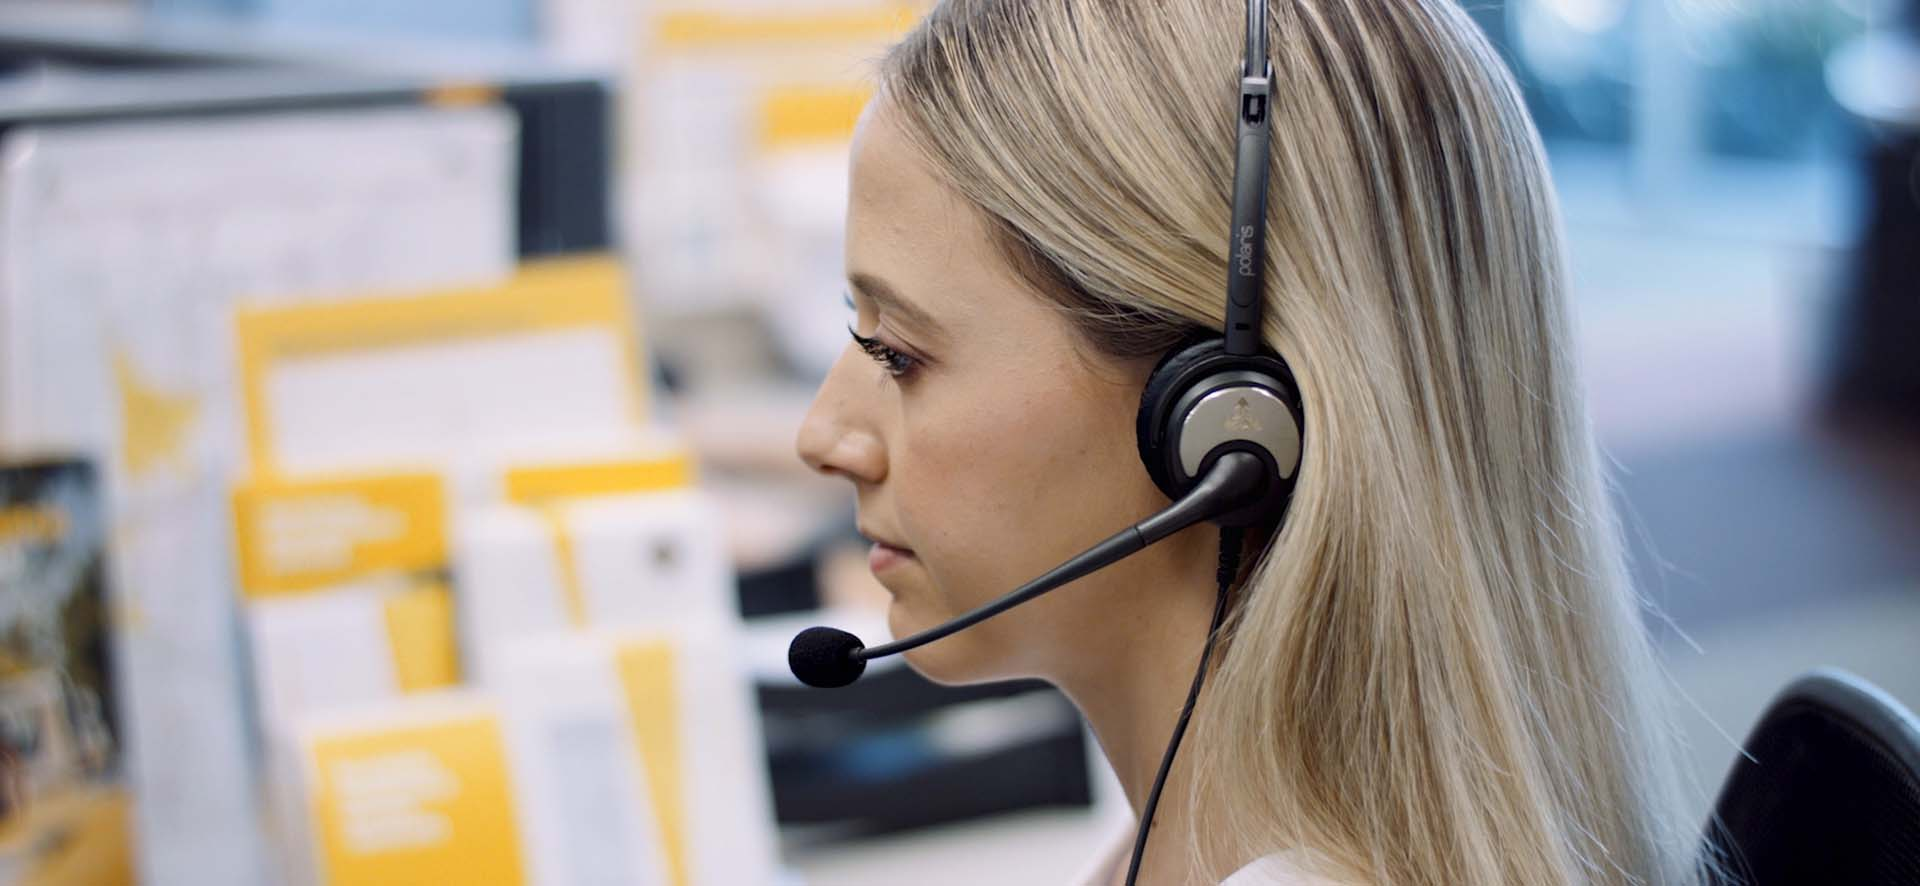 RACWA: A REMINDER TO KEEP YOUR KEYS ON YOU CALL CENTRE OPERATOR